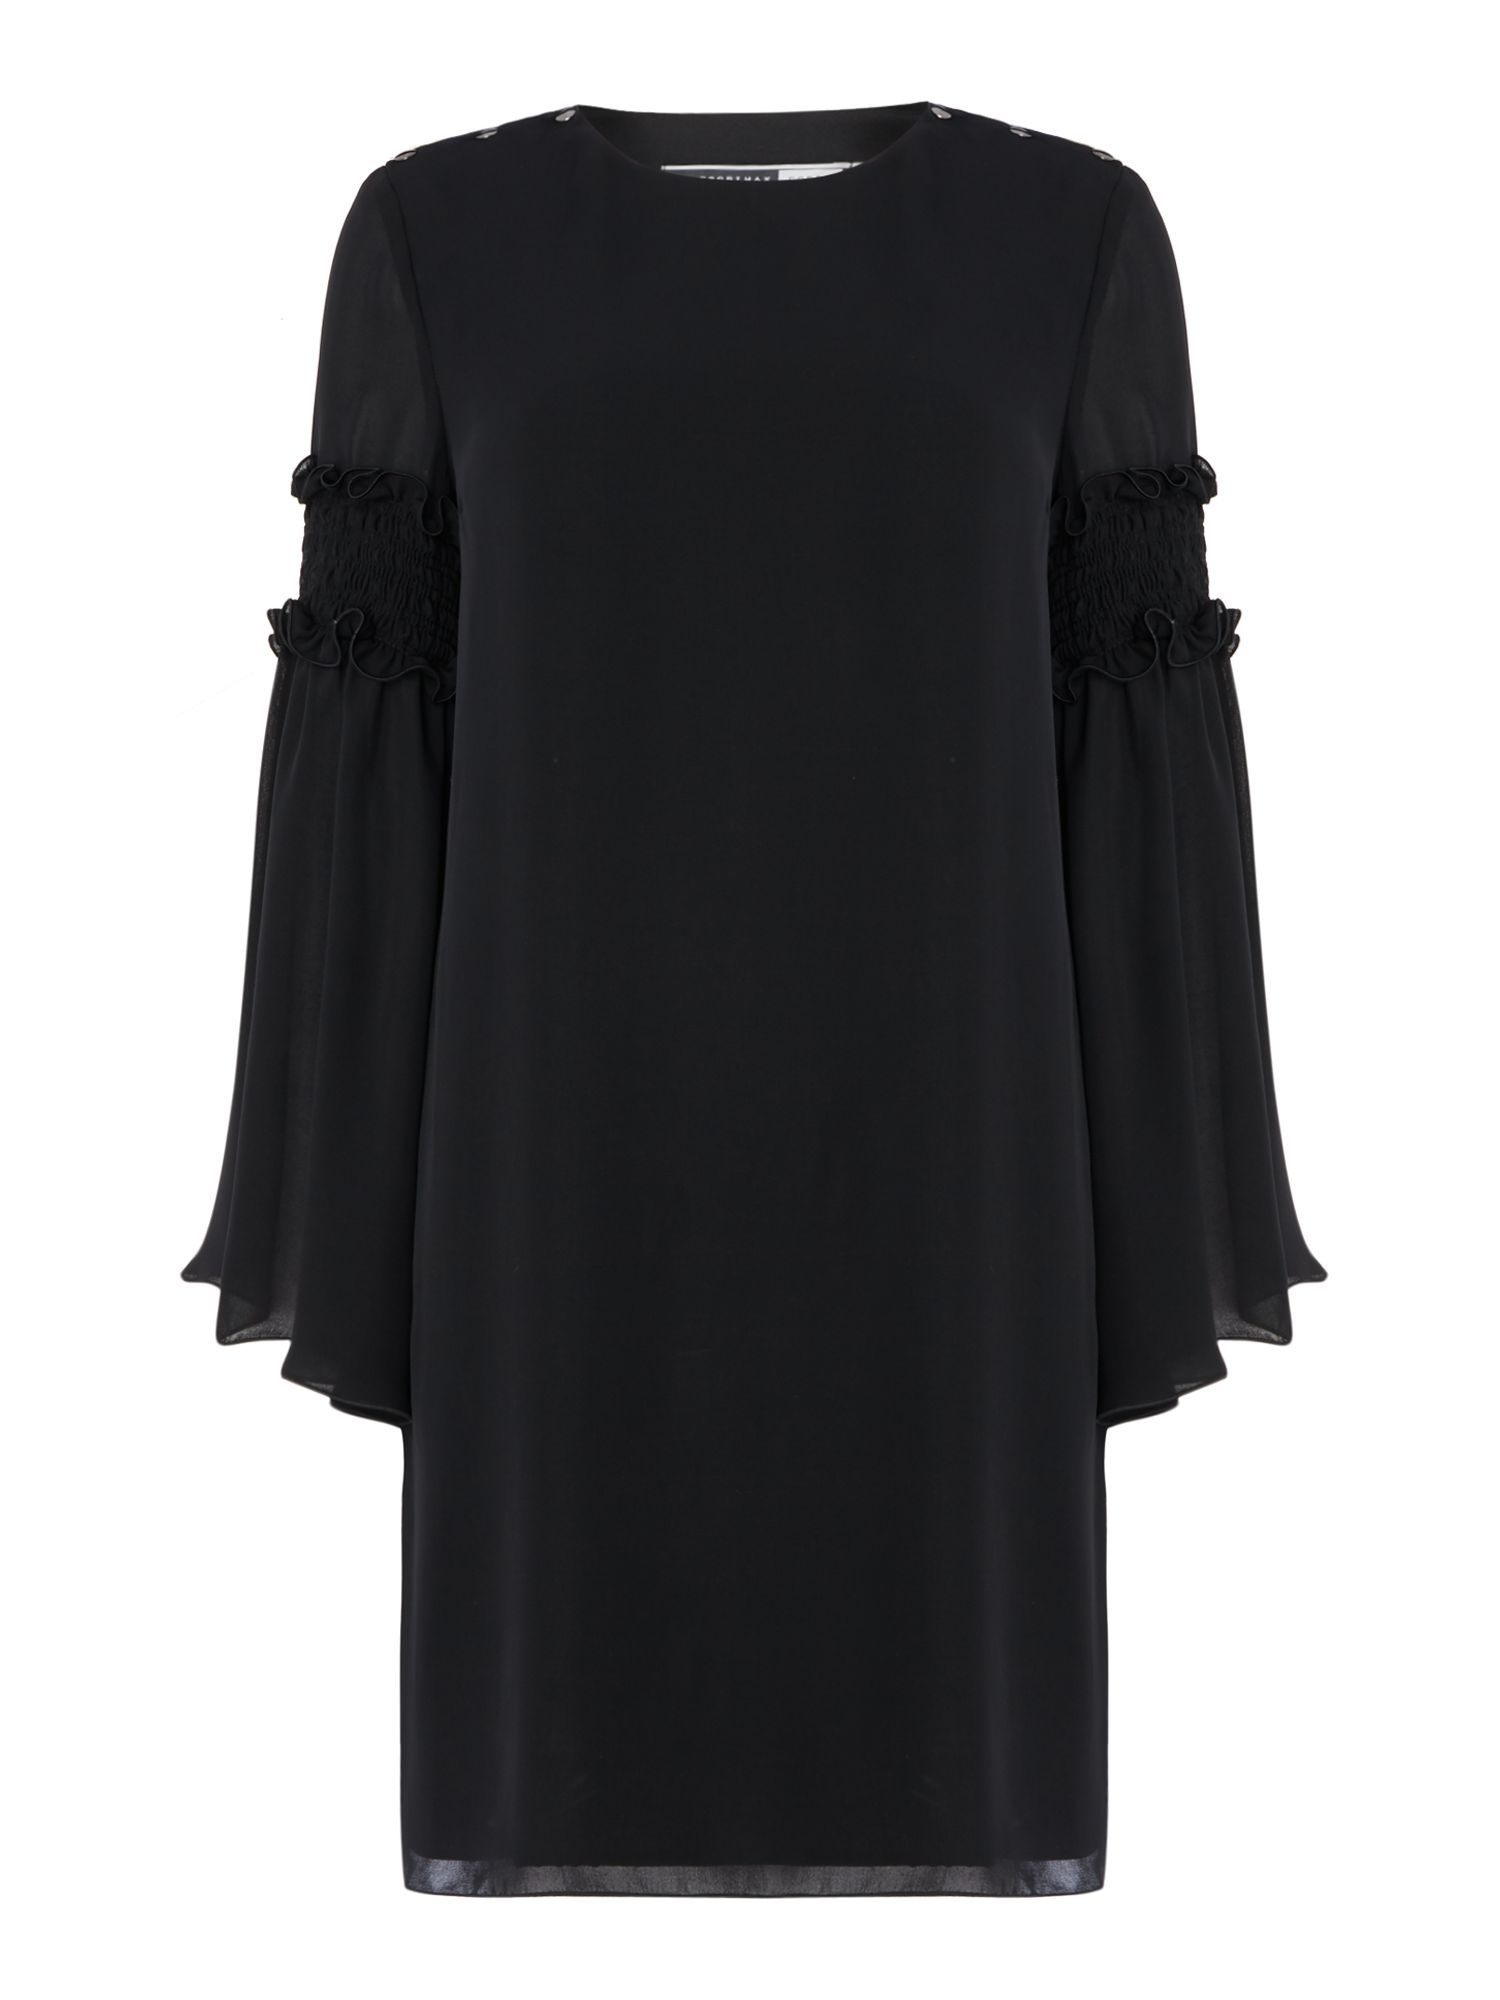 Sportmax Code Palermo dress with ruffle detail flared sleeve, Black